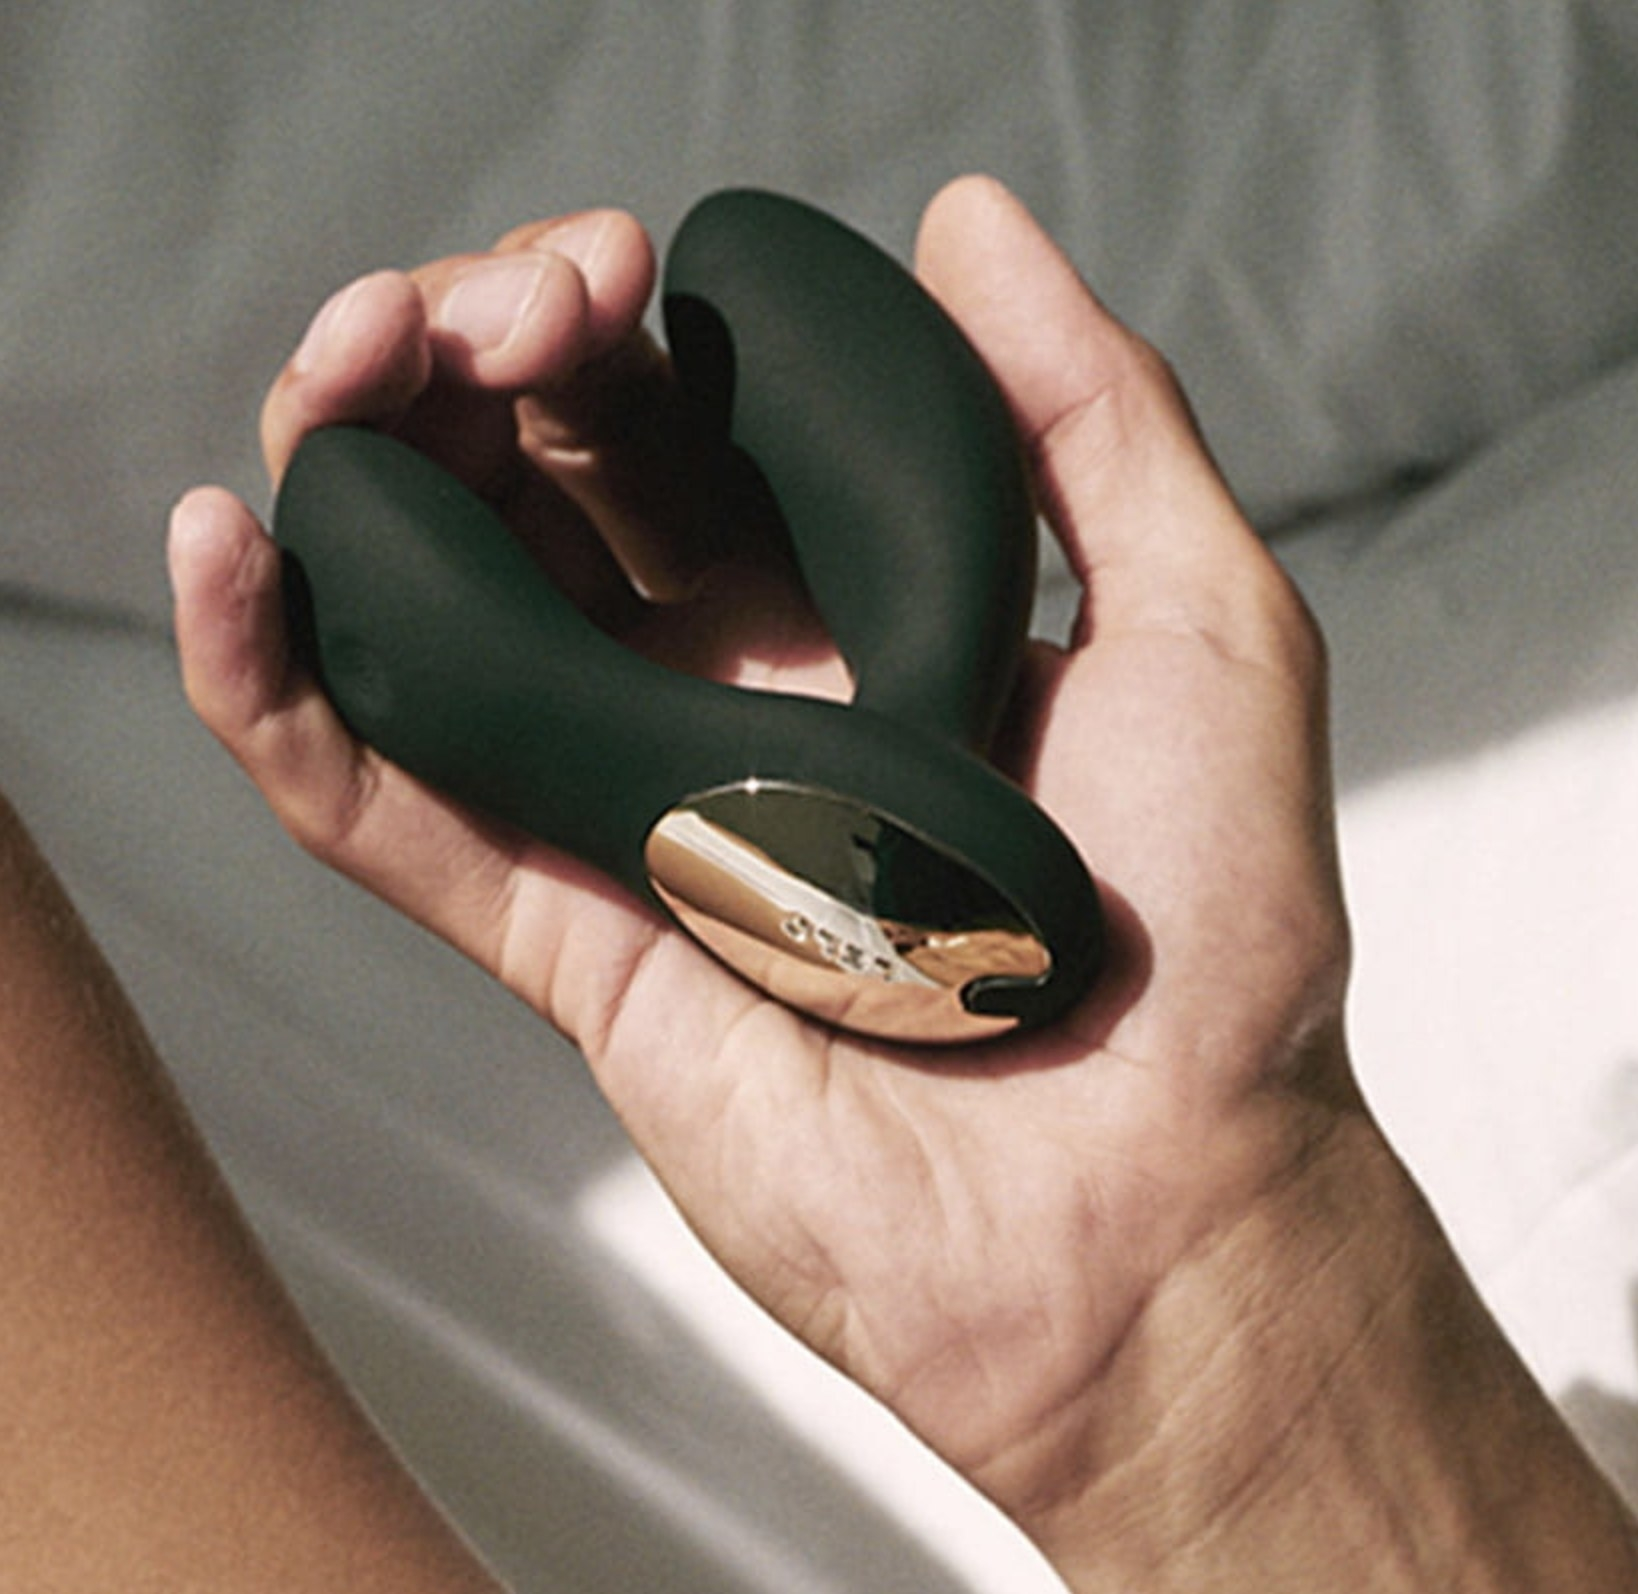 Person is holding a black prostate massager